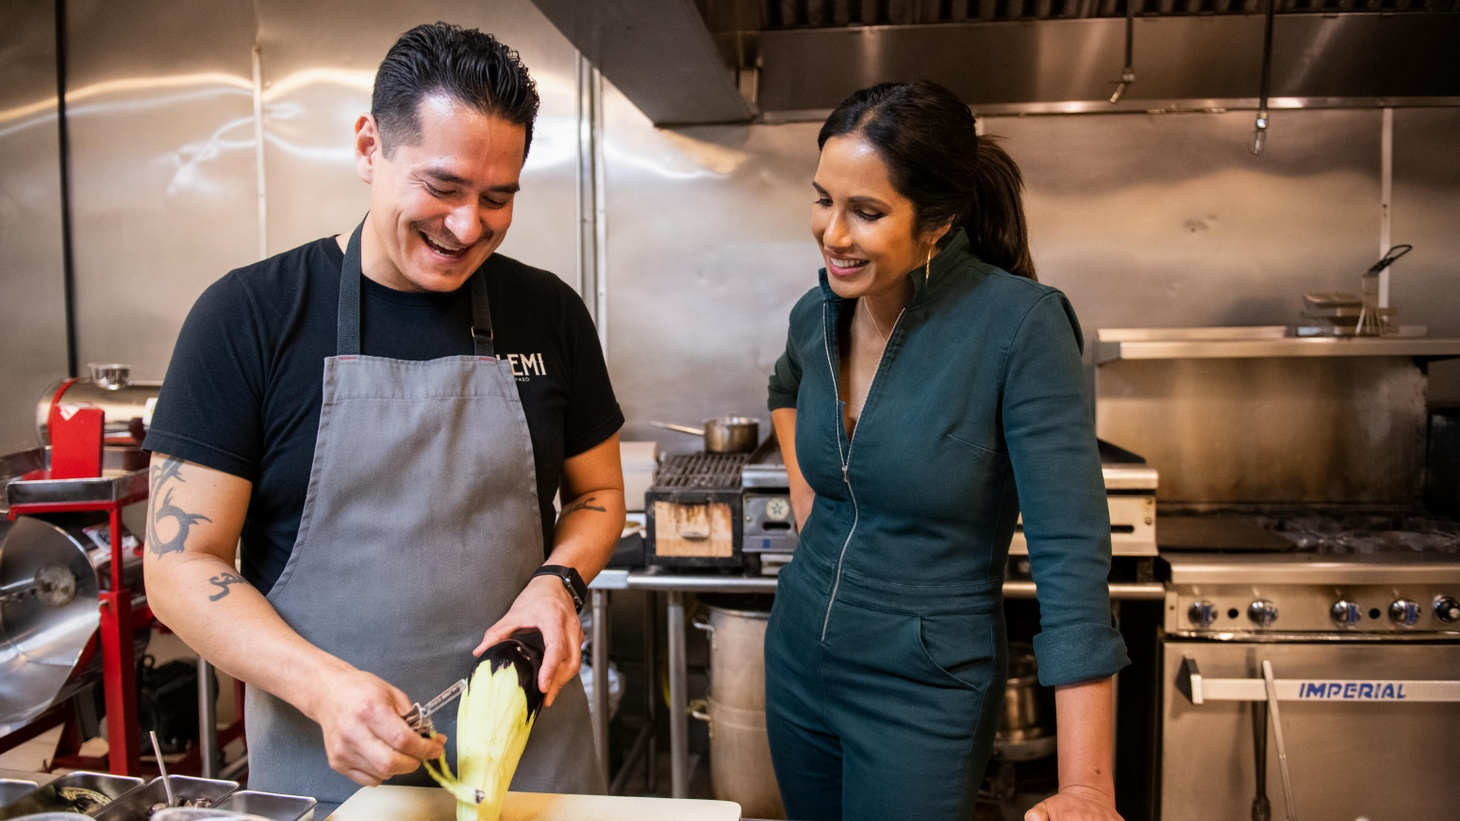 """In """"Taste the Nation,"""" Padma Lakshmi cooks with Emiliano Marentes, the first generation Mexican American owner of the modern restaurant Elemi."""